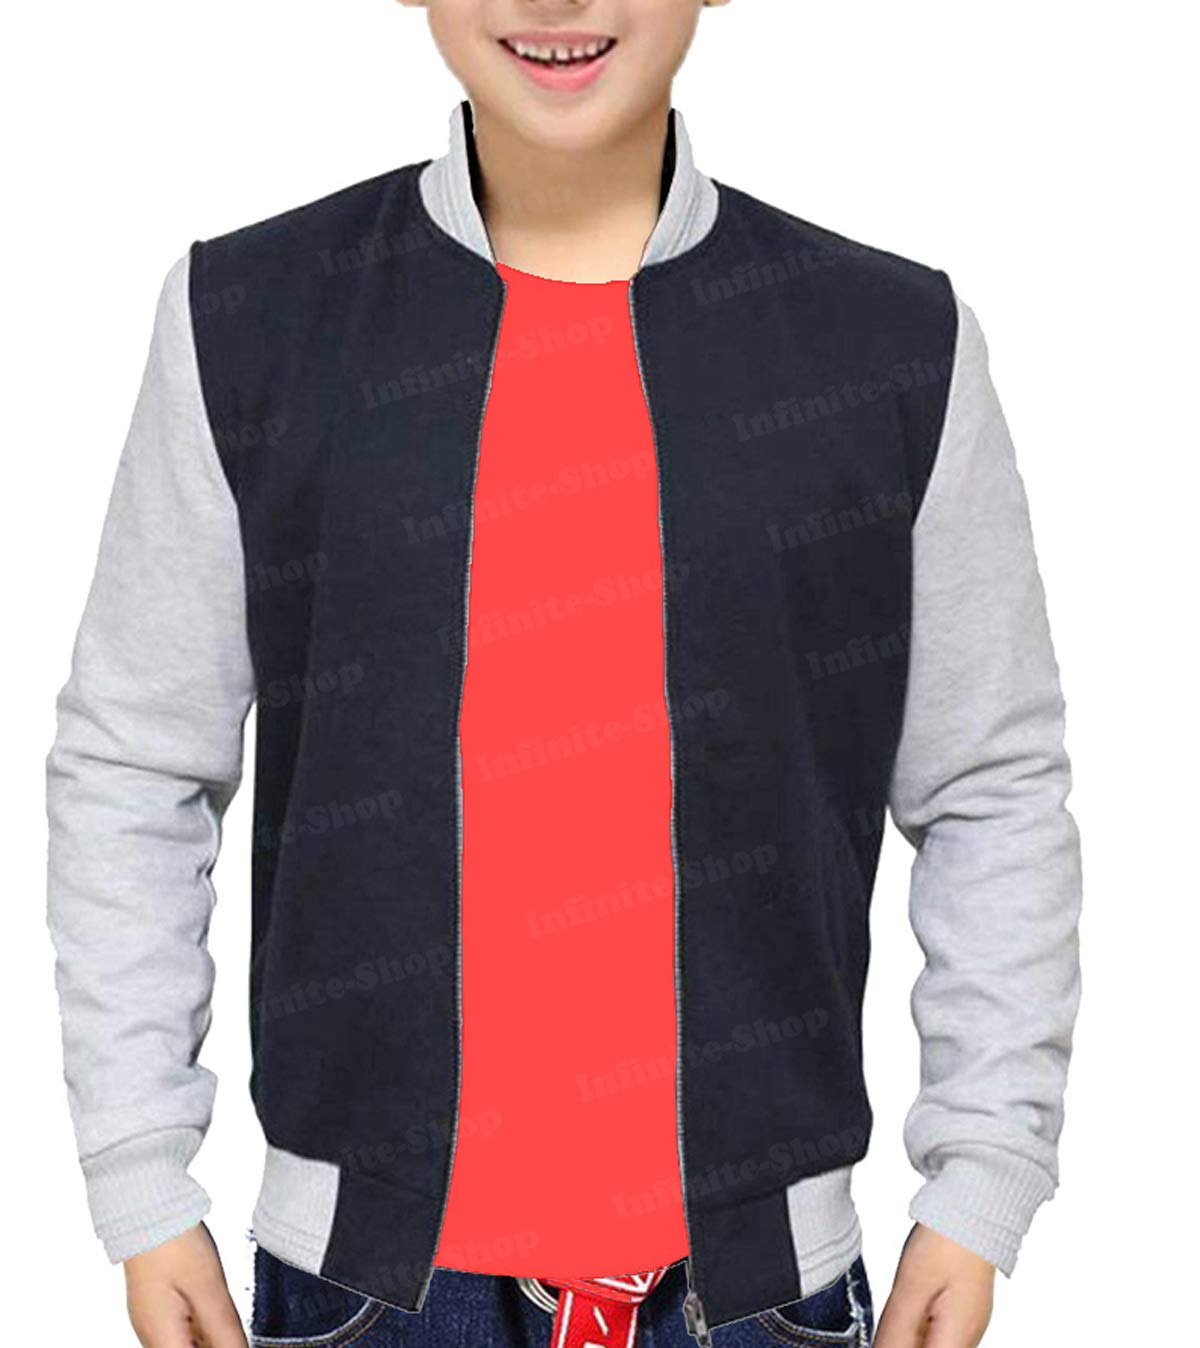 Baby Driver Jacket Ansel Elgort Baby Varsity Bomber Jacket for Kids by LeathersWear